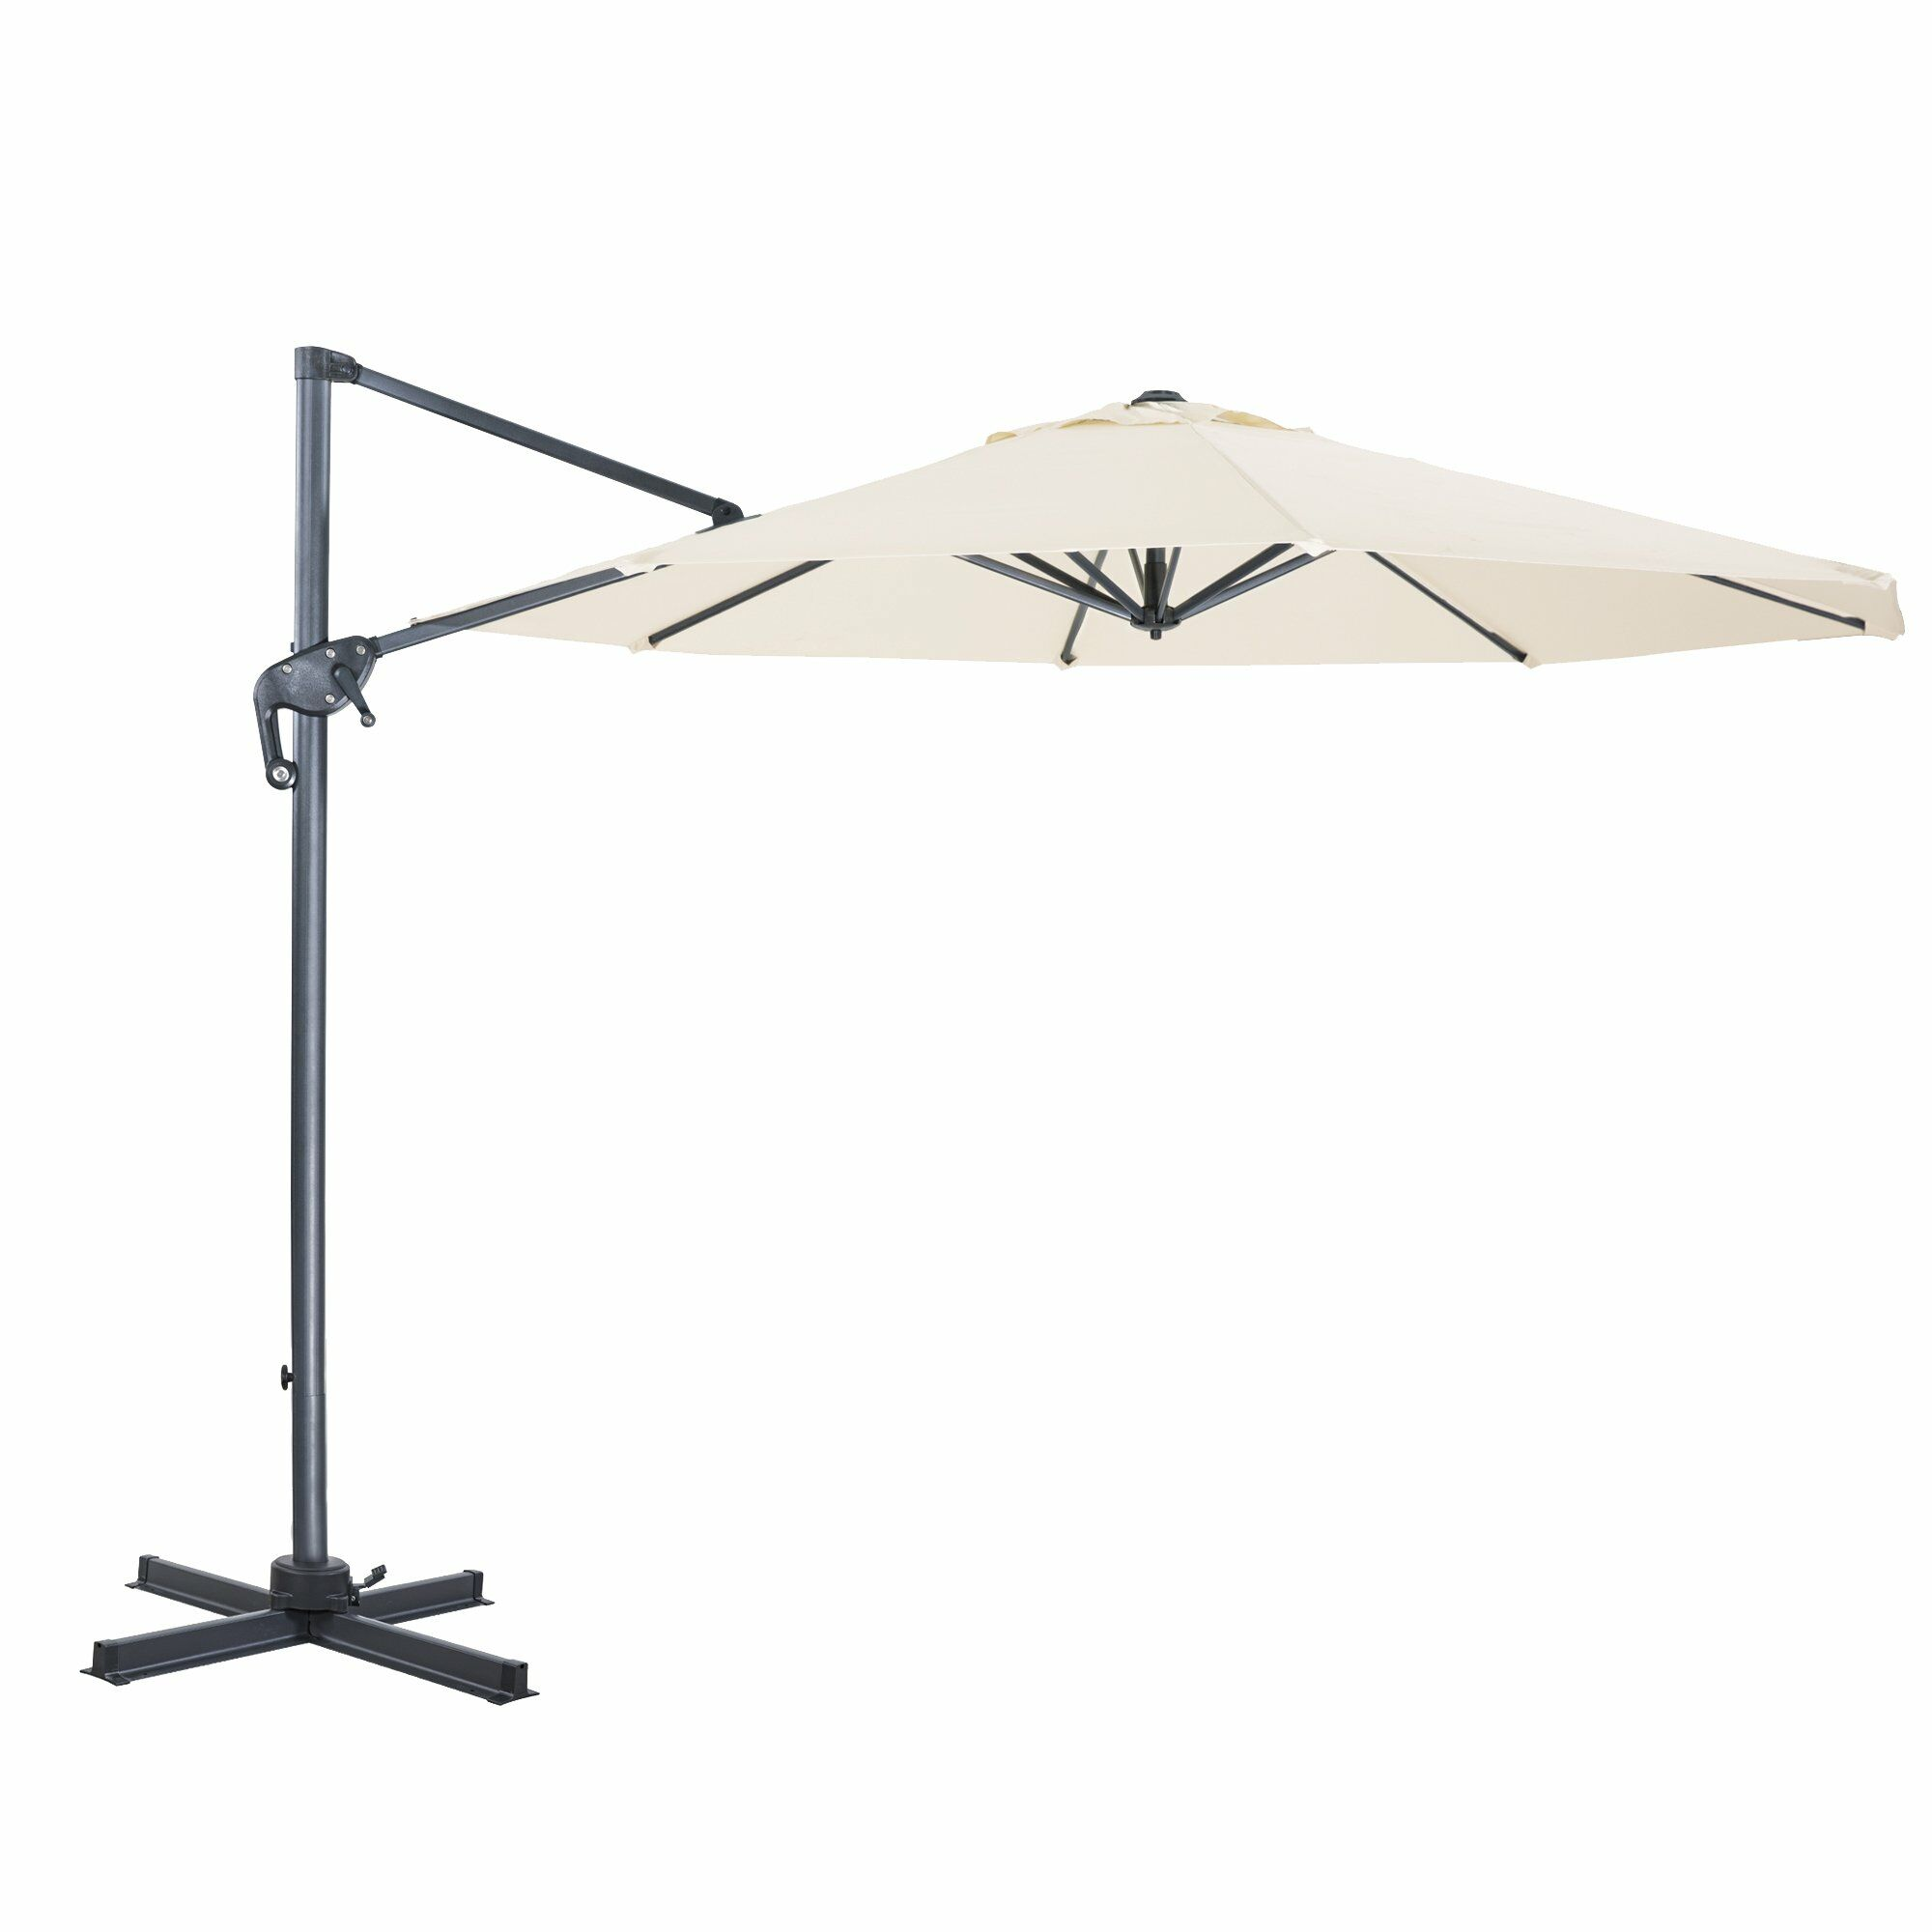 EmeraldCove Patio Offset 10' Cantilever Umbrella Fabric Color: Milk White